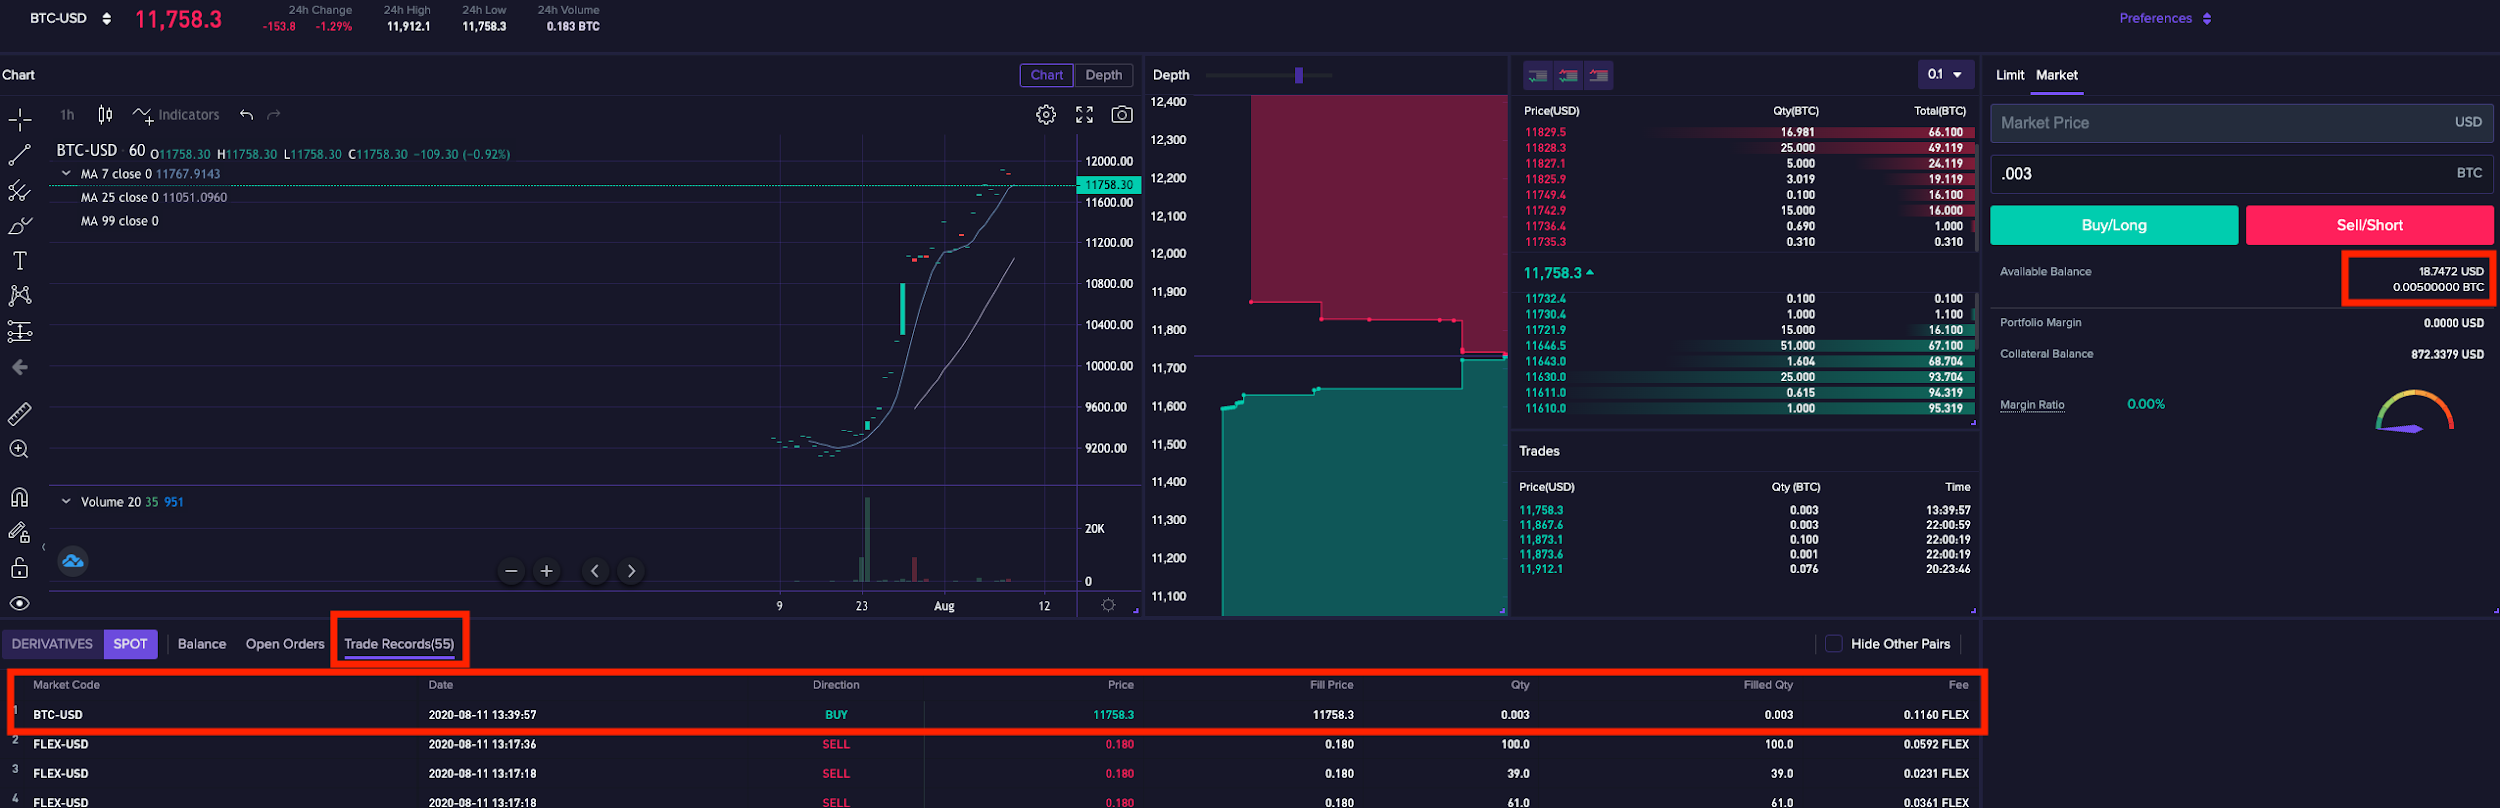 trade7 1.1.10 Basics of how to trade on CoinFLEX